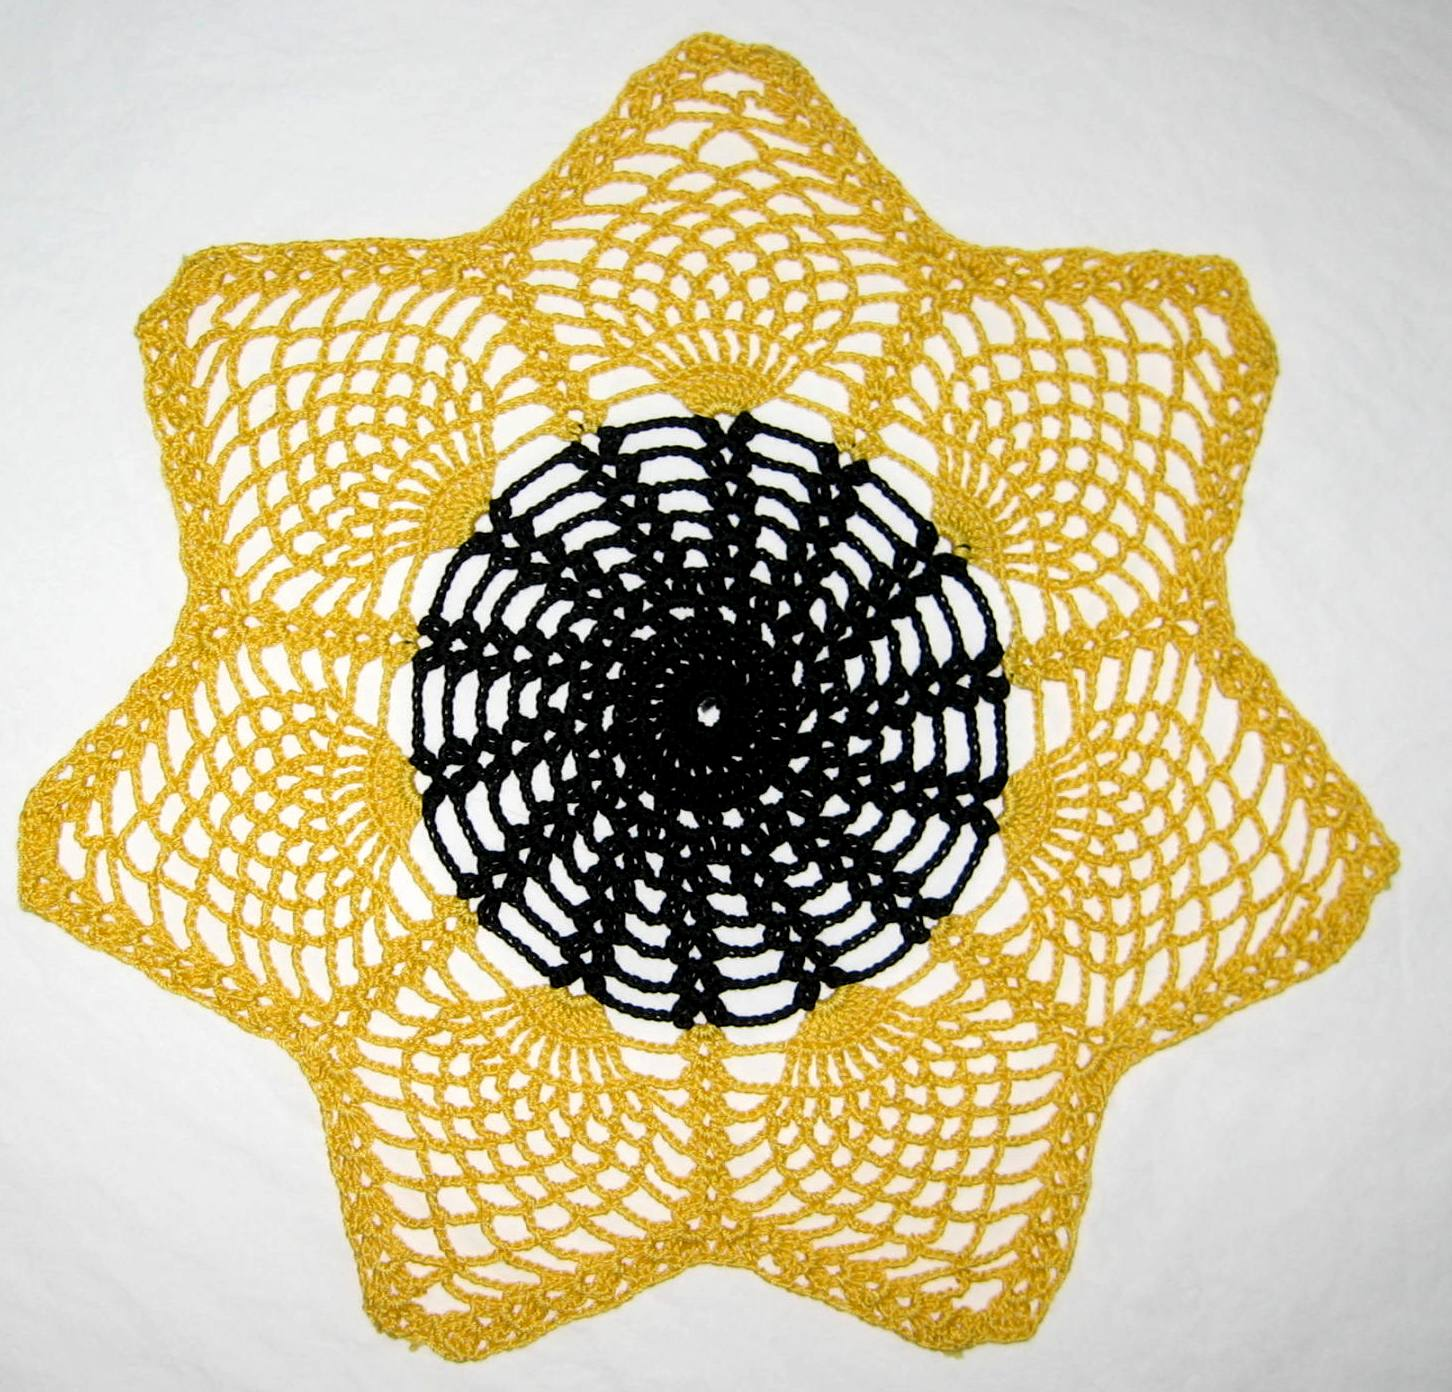 Love Crochet: September 2010